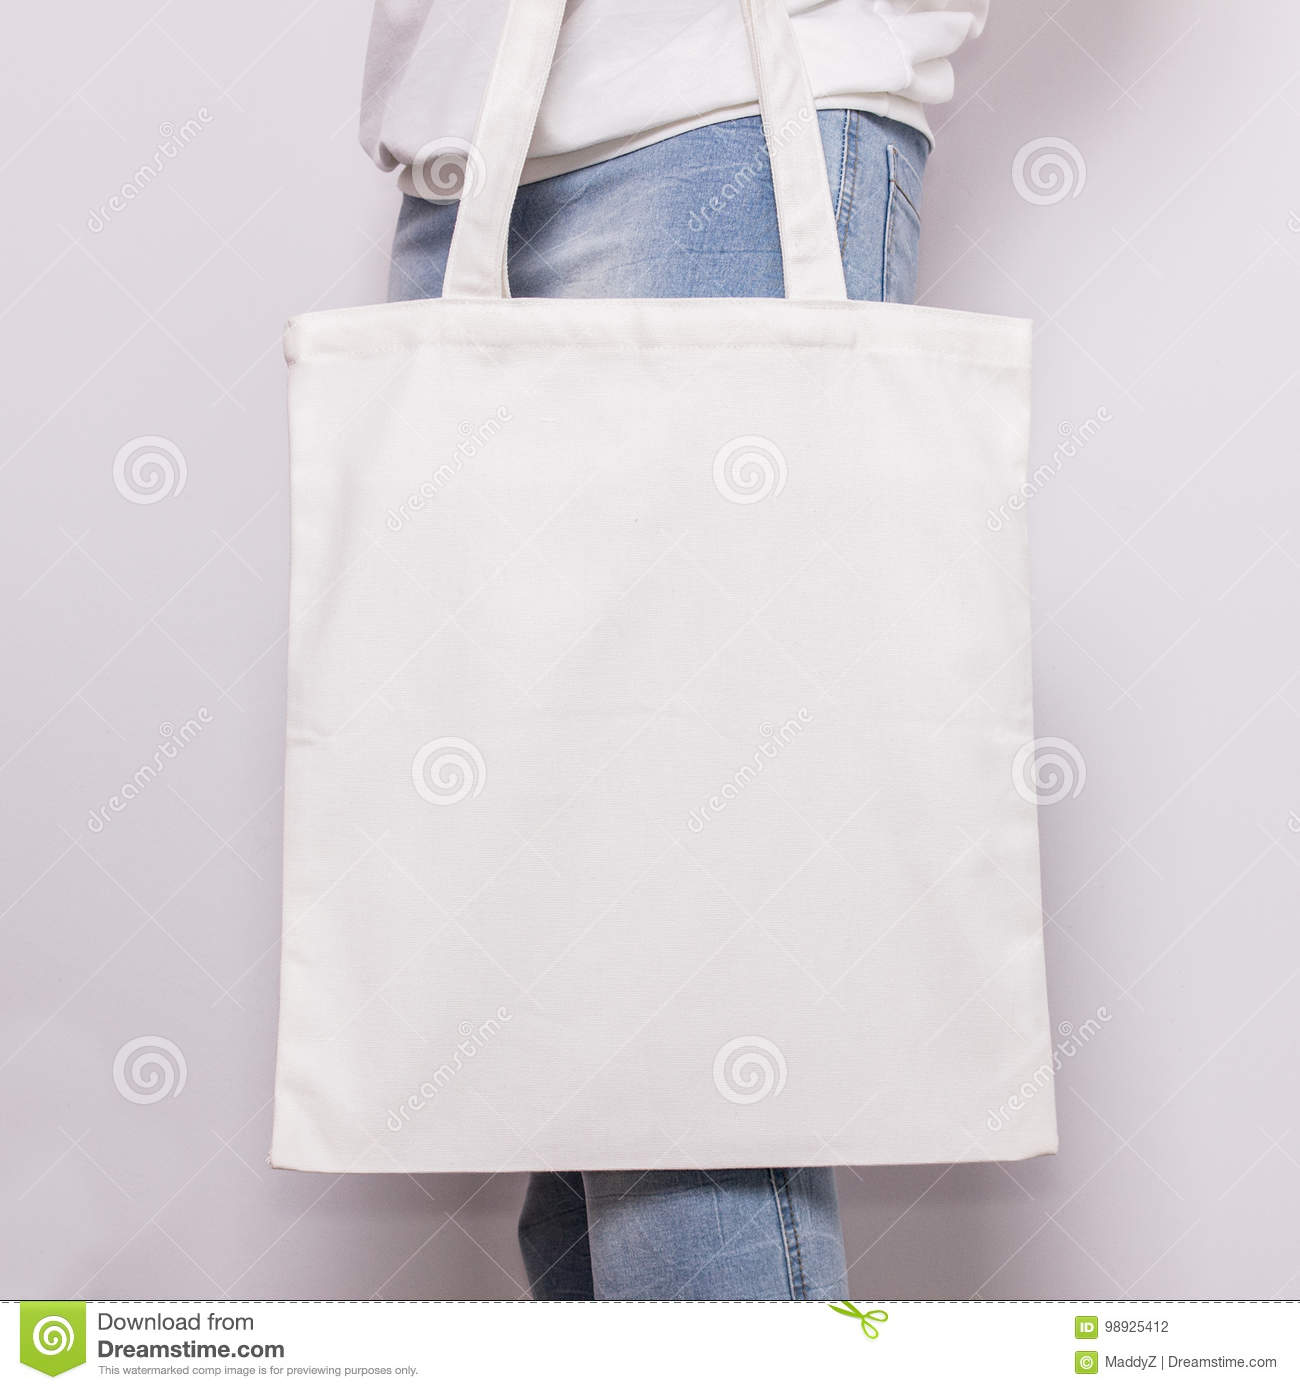 Girl in blue jeans holds blank cotton eco tote bag, design mockup. Handmade shopping bag for girls